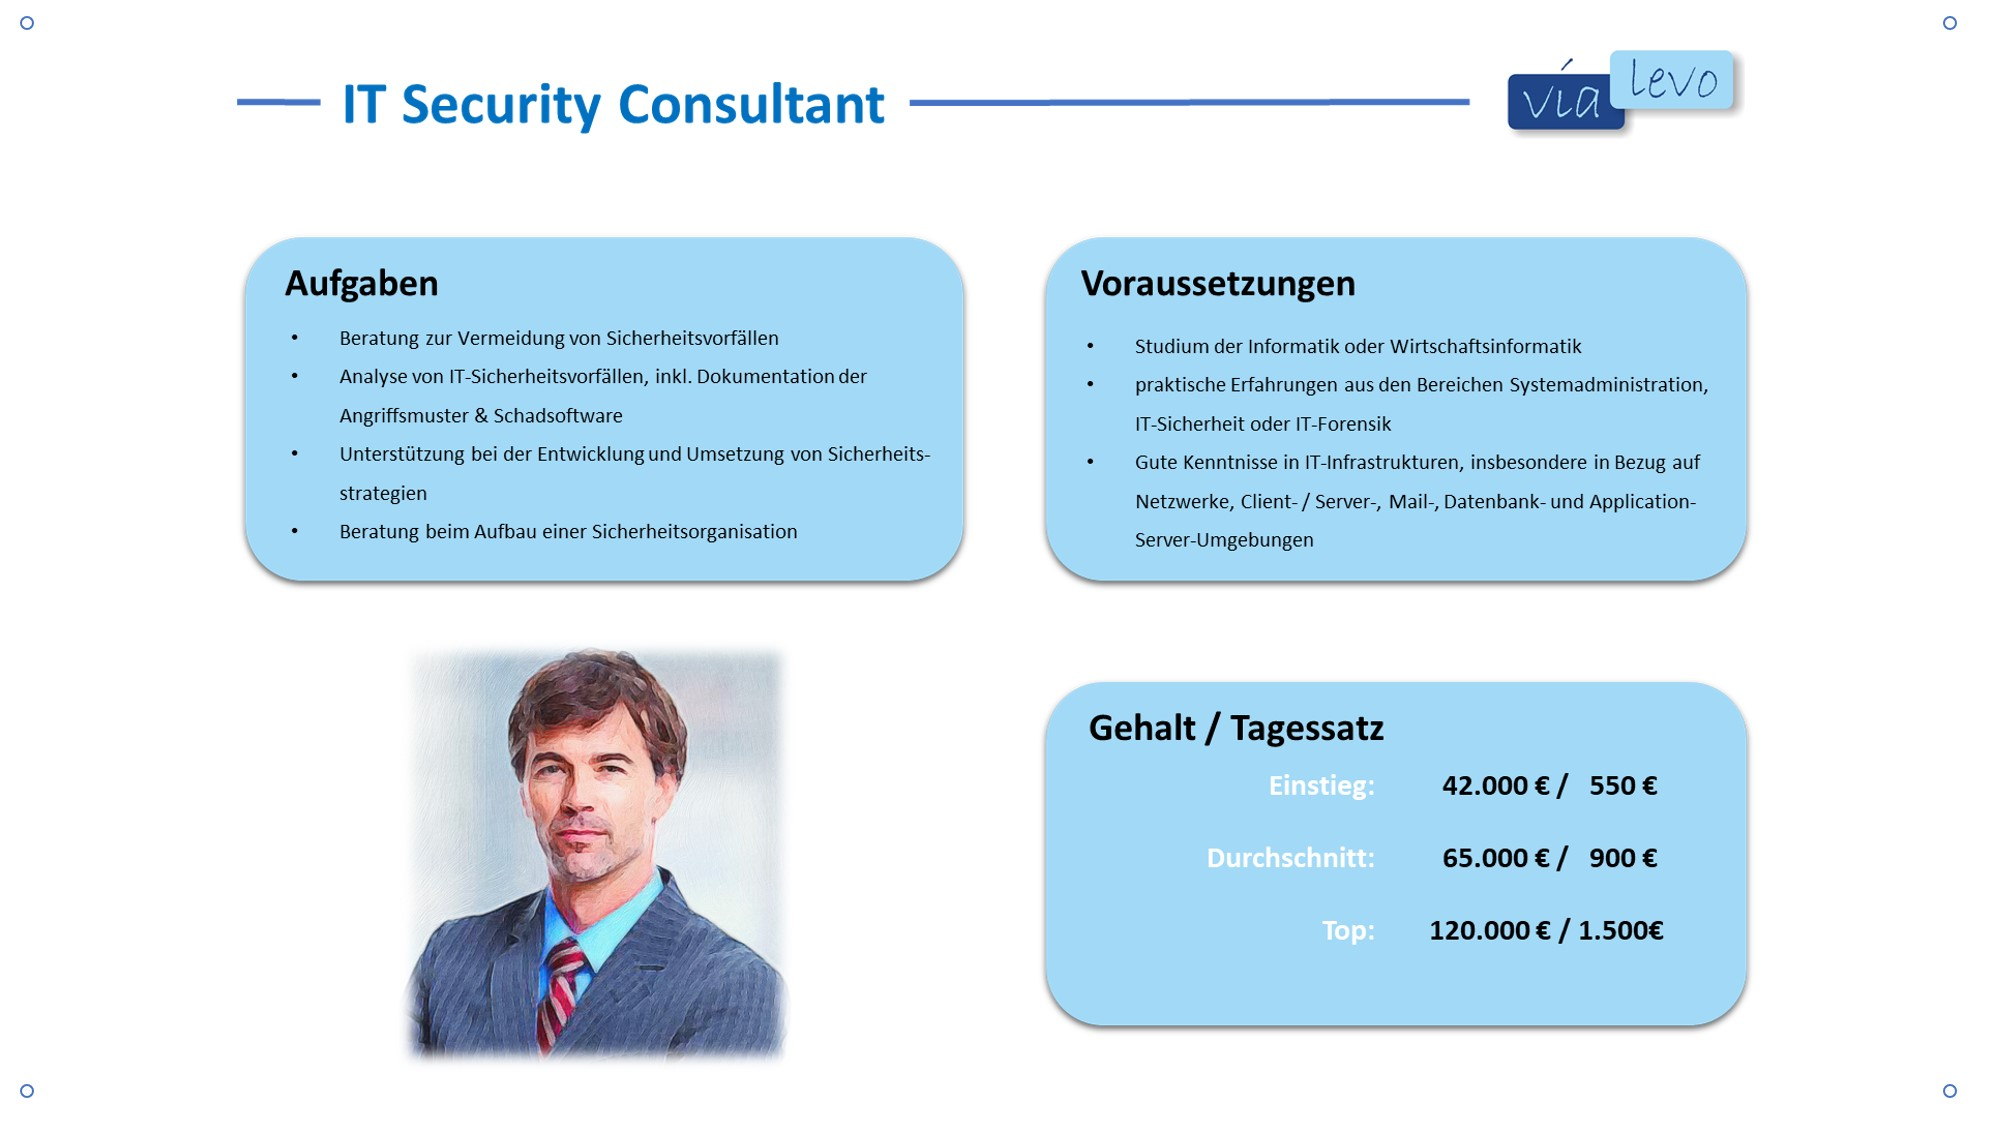 IT-Security Consultant Gehalt